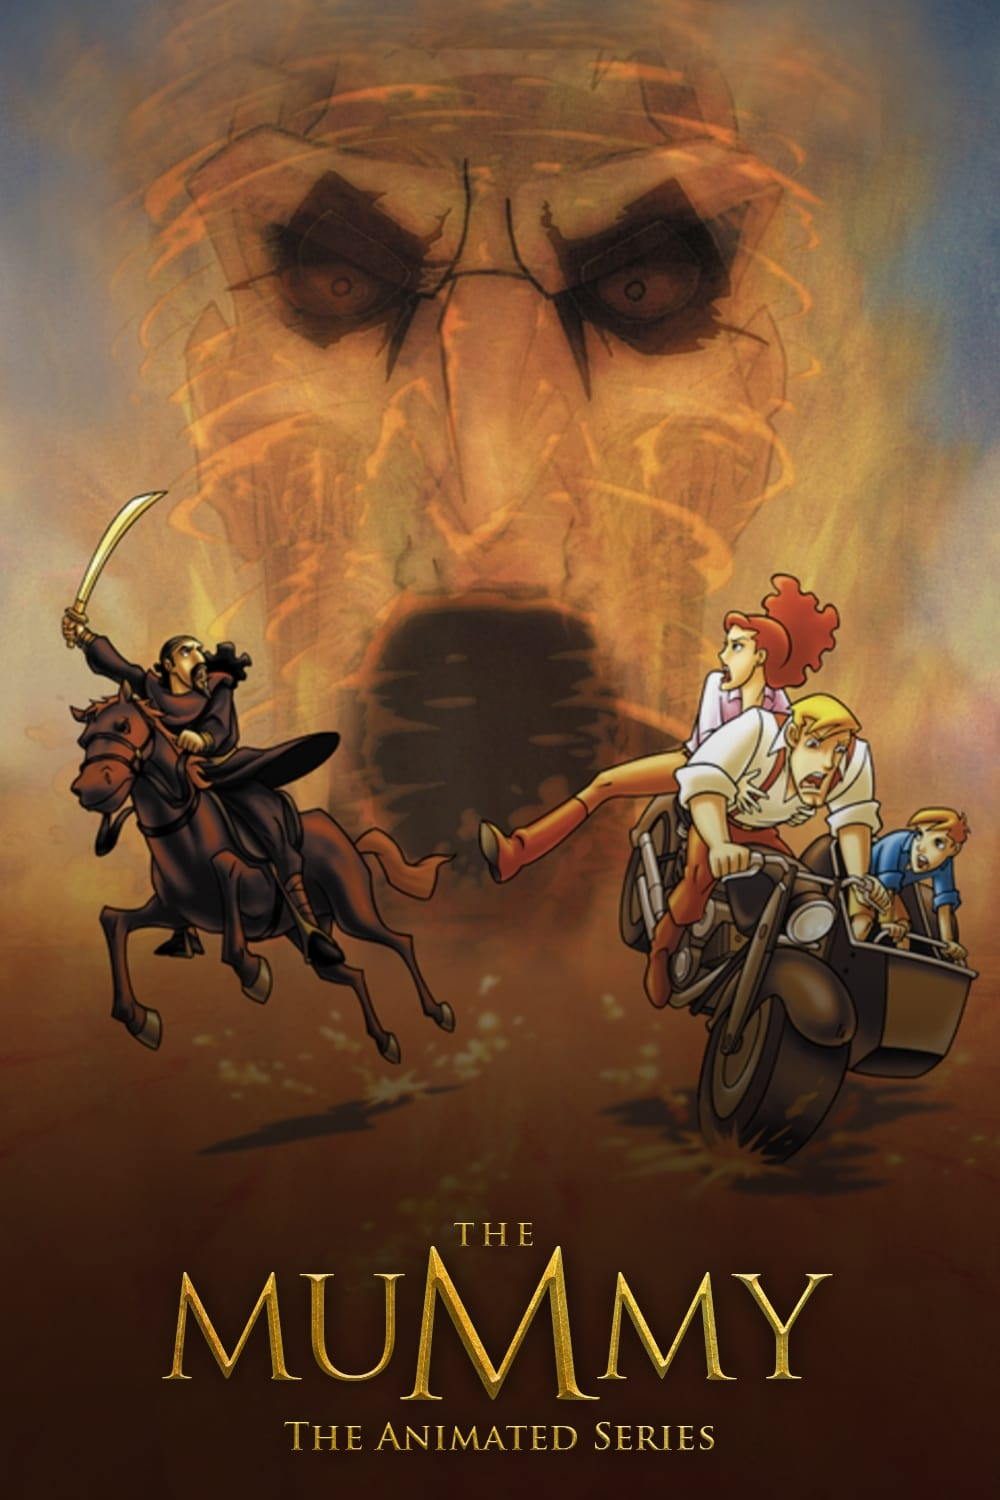 The Mummy: The Animated Series TV Shows About Egypt